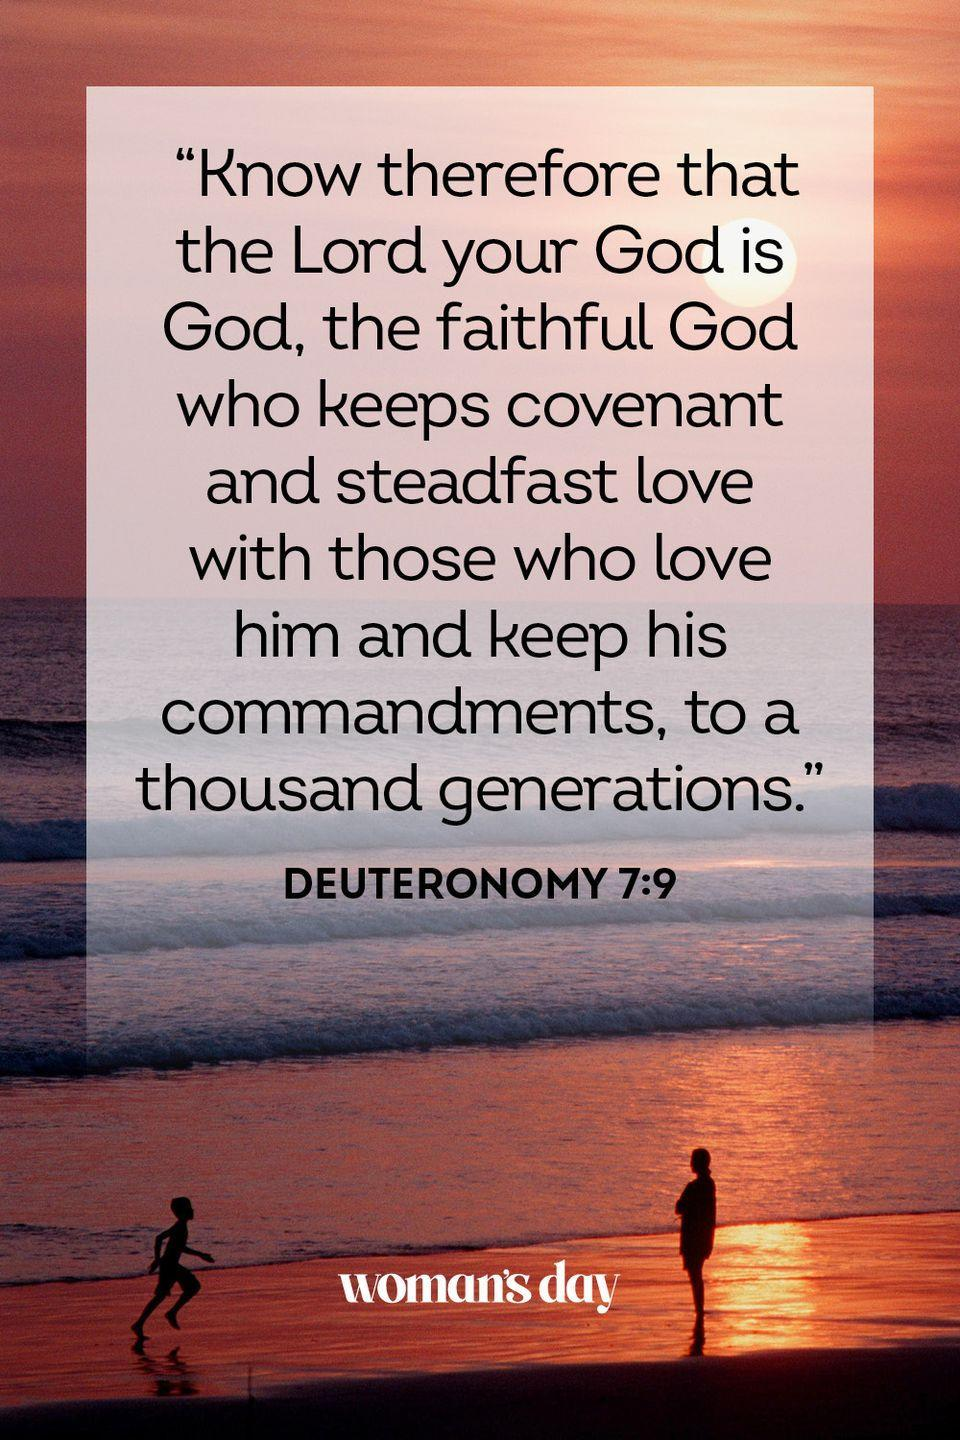 "<p>""Know therefore that the Lord your God is God, the faithful God who keeps covenant and steadfast love with those who love him and keep his commandments, to a thousand generations.""</p><p><strong>The Good News:</strong> Over and over, the Bible affirms God's love as ""steadfast,"" ever available to those who need it.</p>"